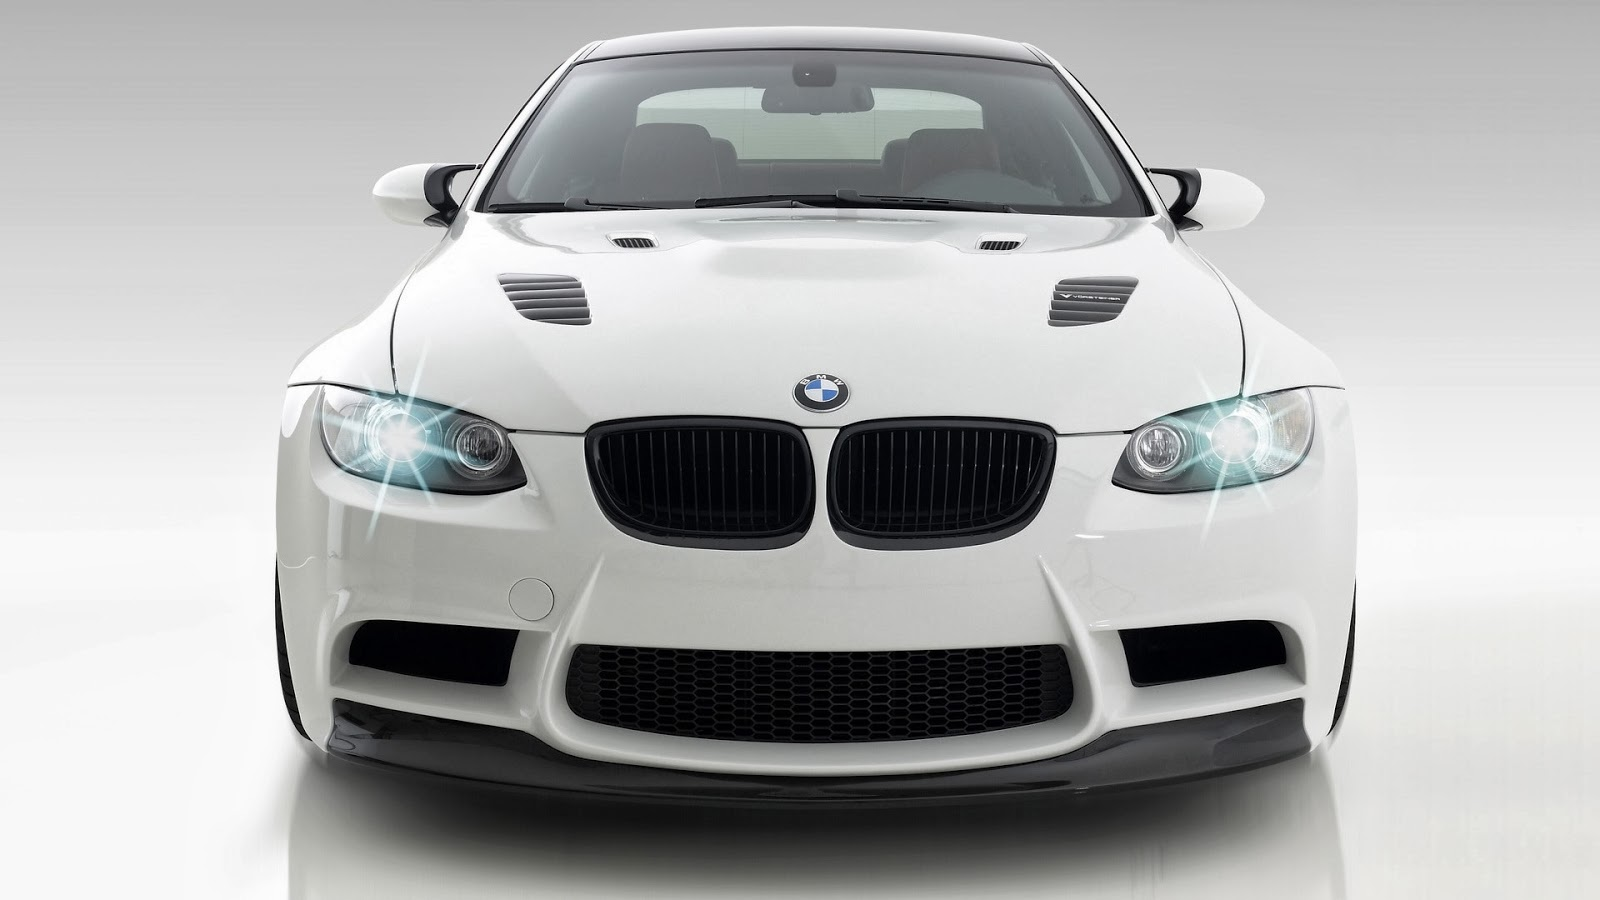 Hd Bmw Car Wallpapers 1080p Mobile Wallpapers